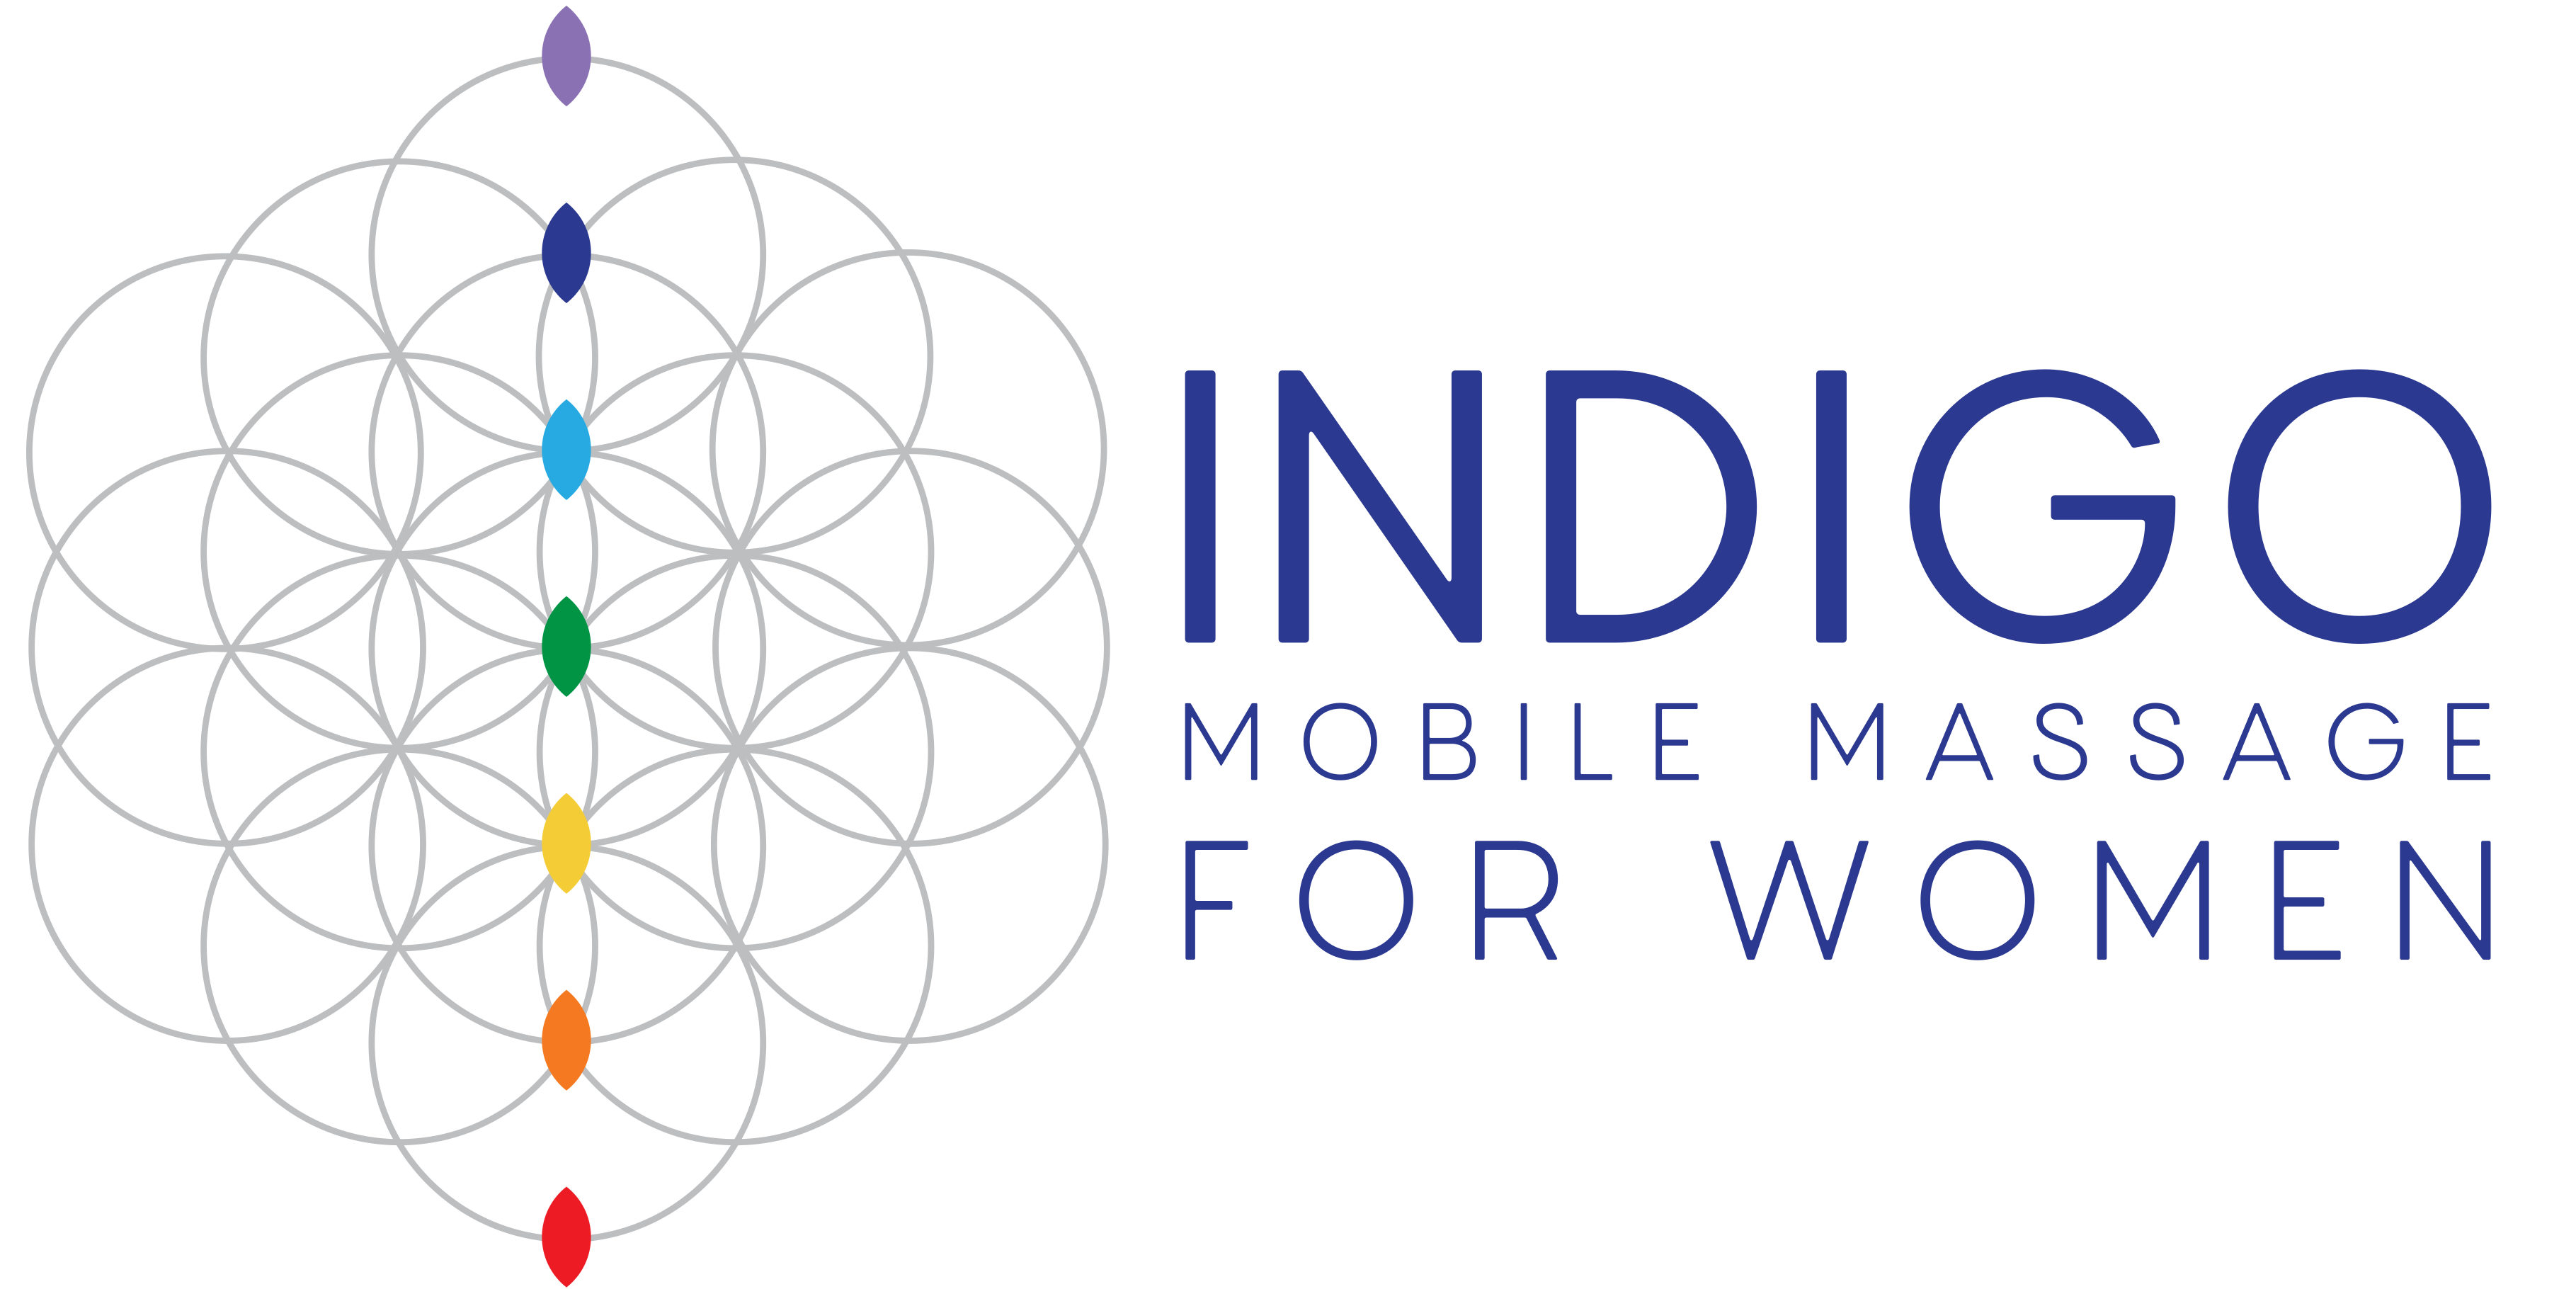 Indigo Mobile Massage for Women